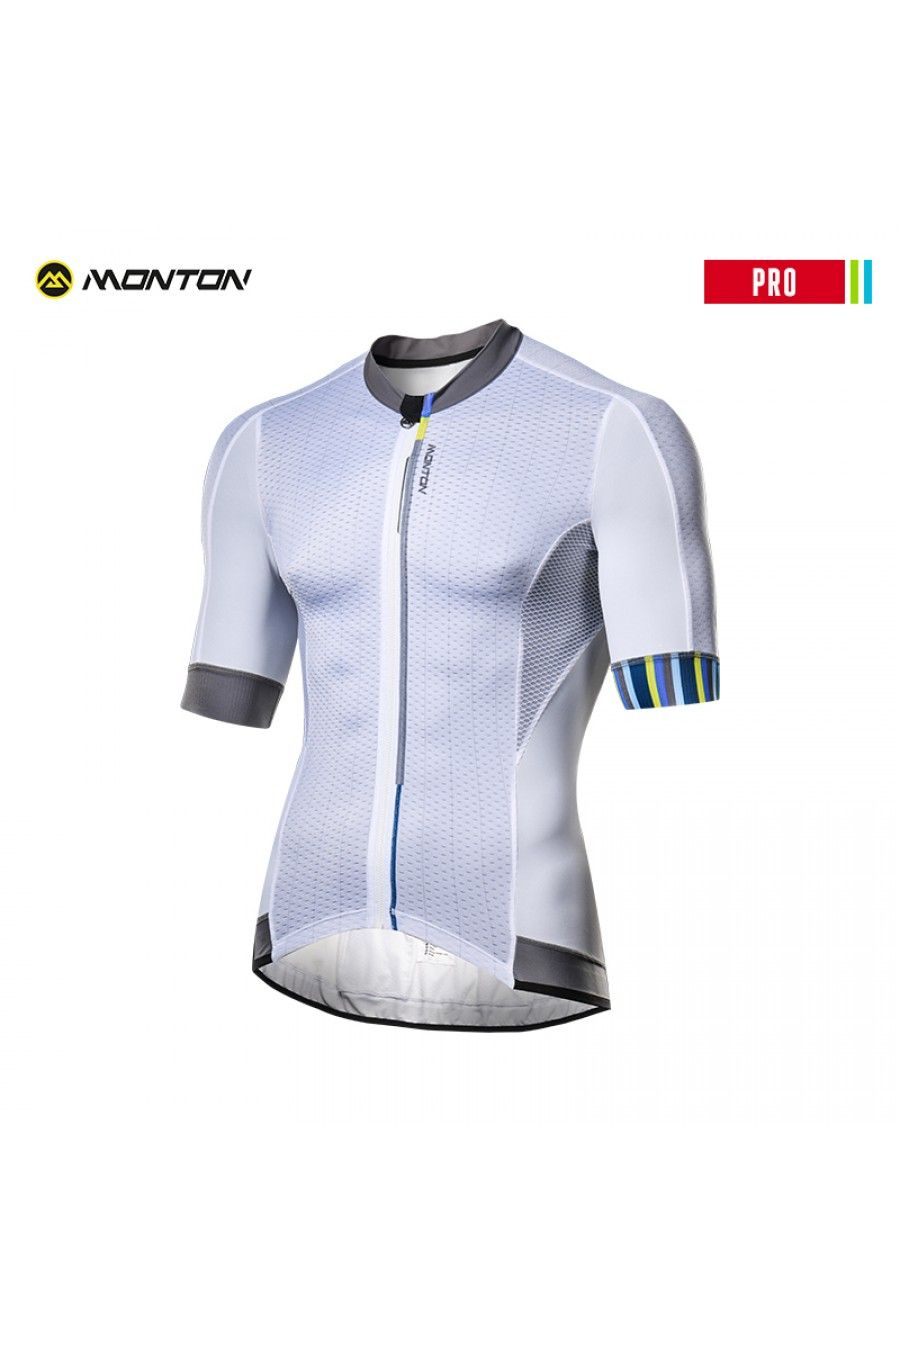 Plain white cycling jersey  72778621b